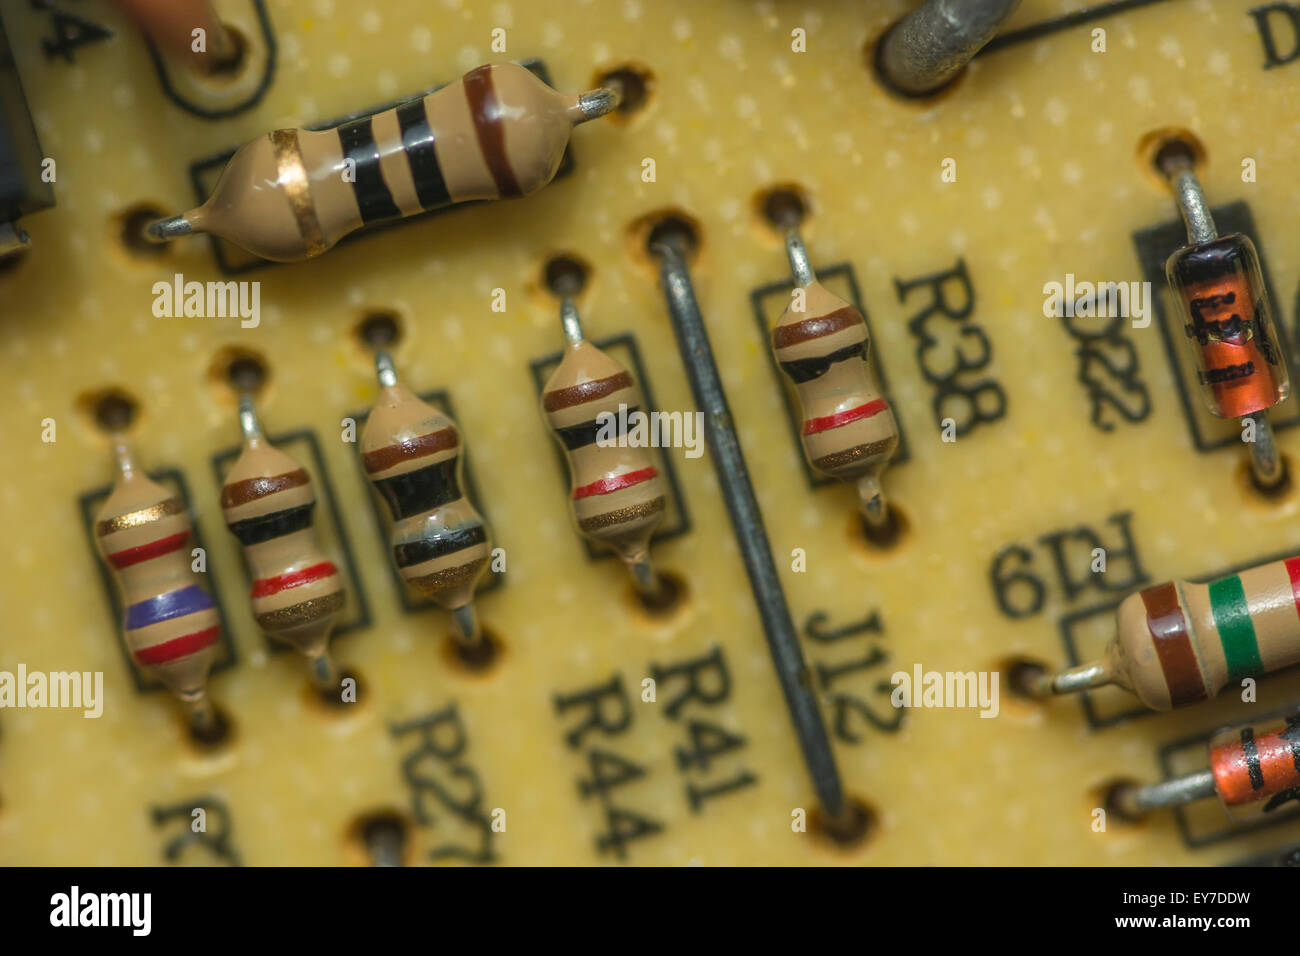 Circuit Board Soldering Resistors Stock Photos Boardpcb Mass Production Printed Product On Macro Photo Of Carbon A Pcb